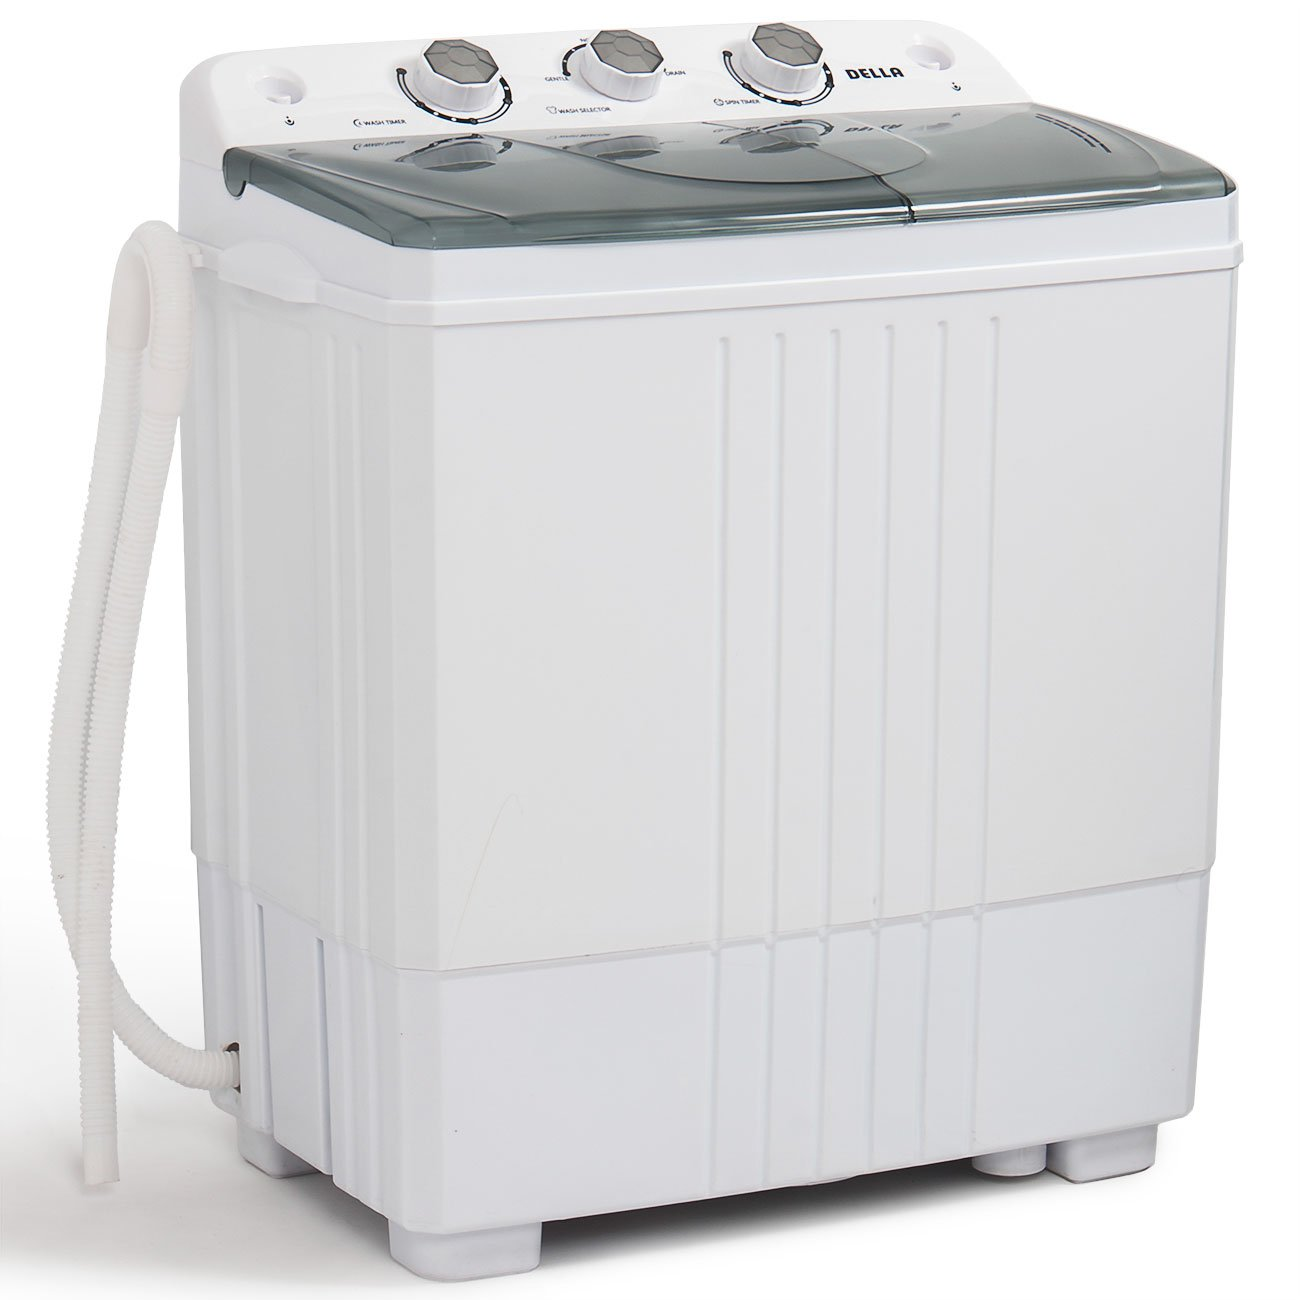 Della Small Compact Washing Machine